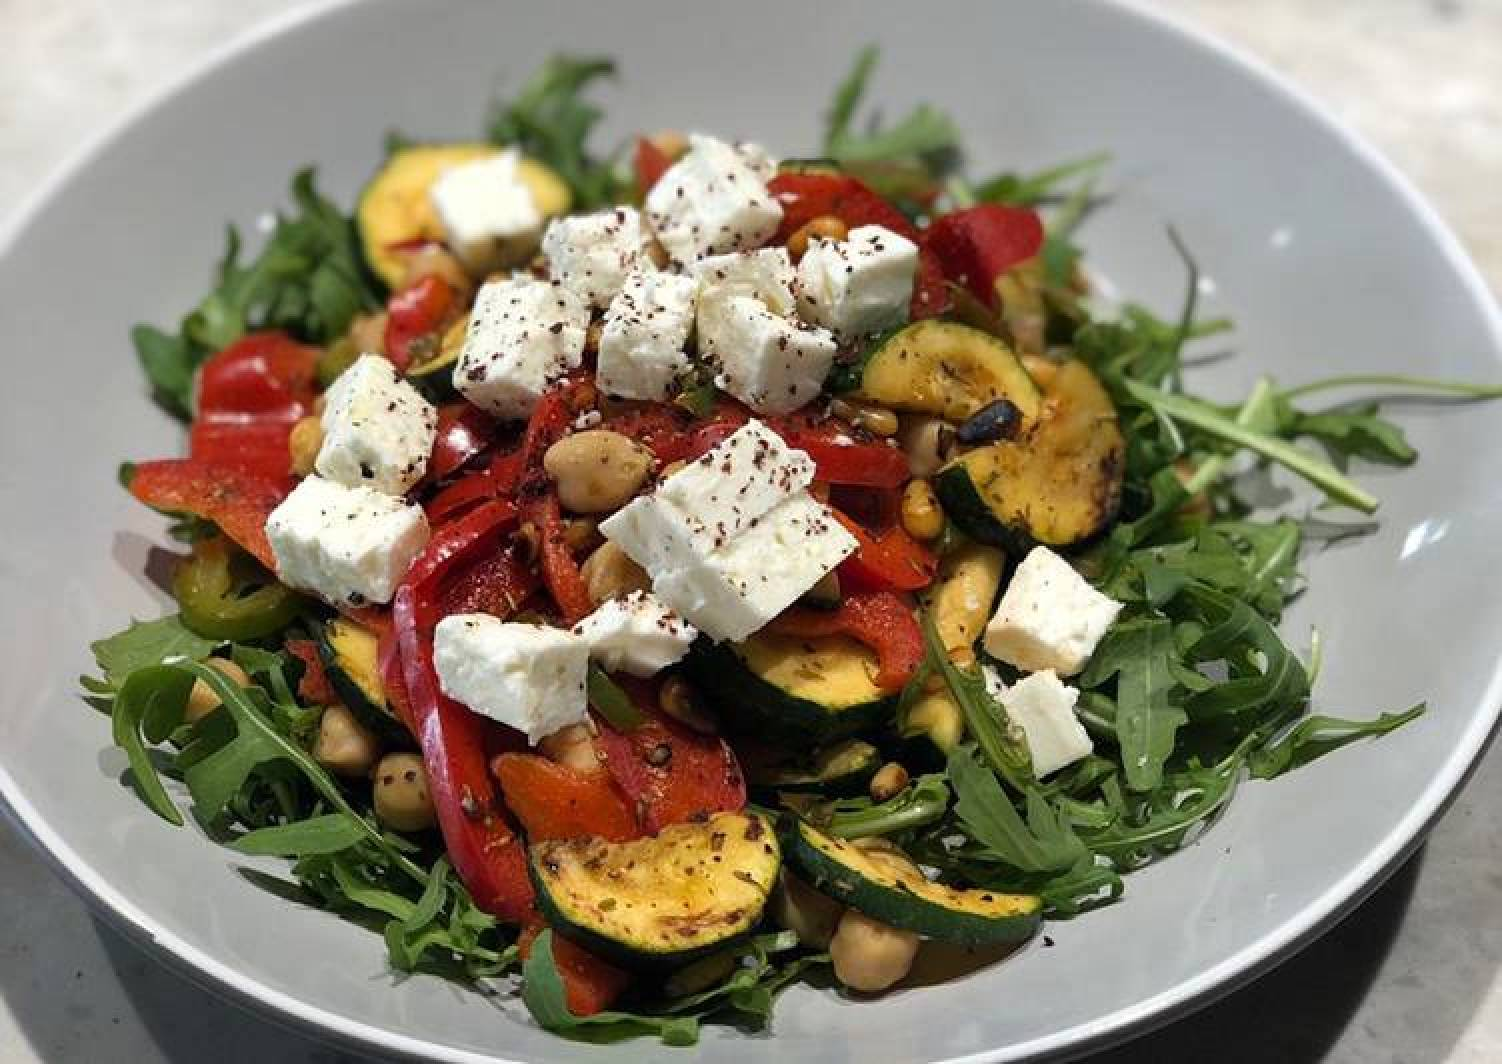 Mediterranean chickpea feta and grilled vegetable salad